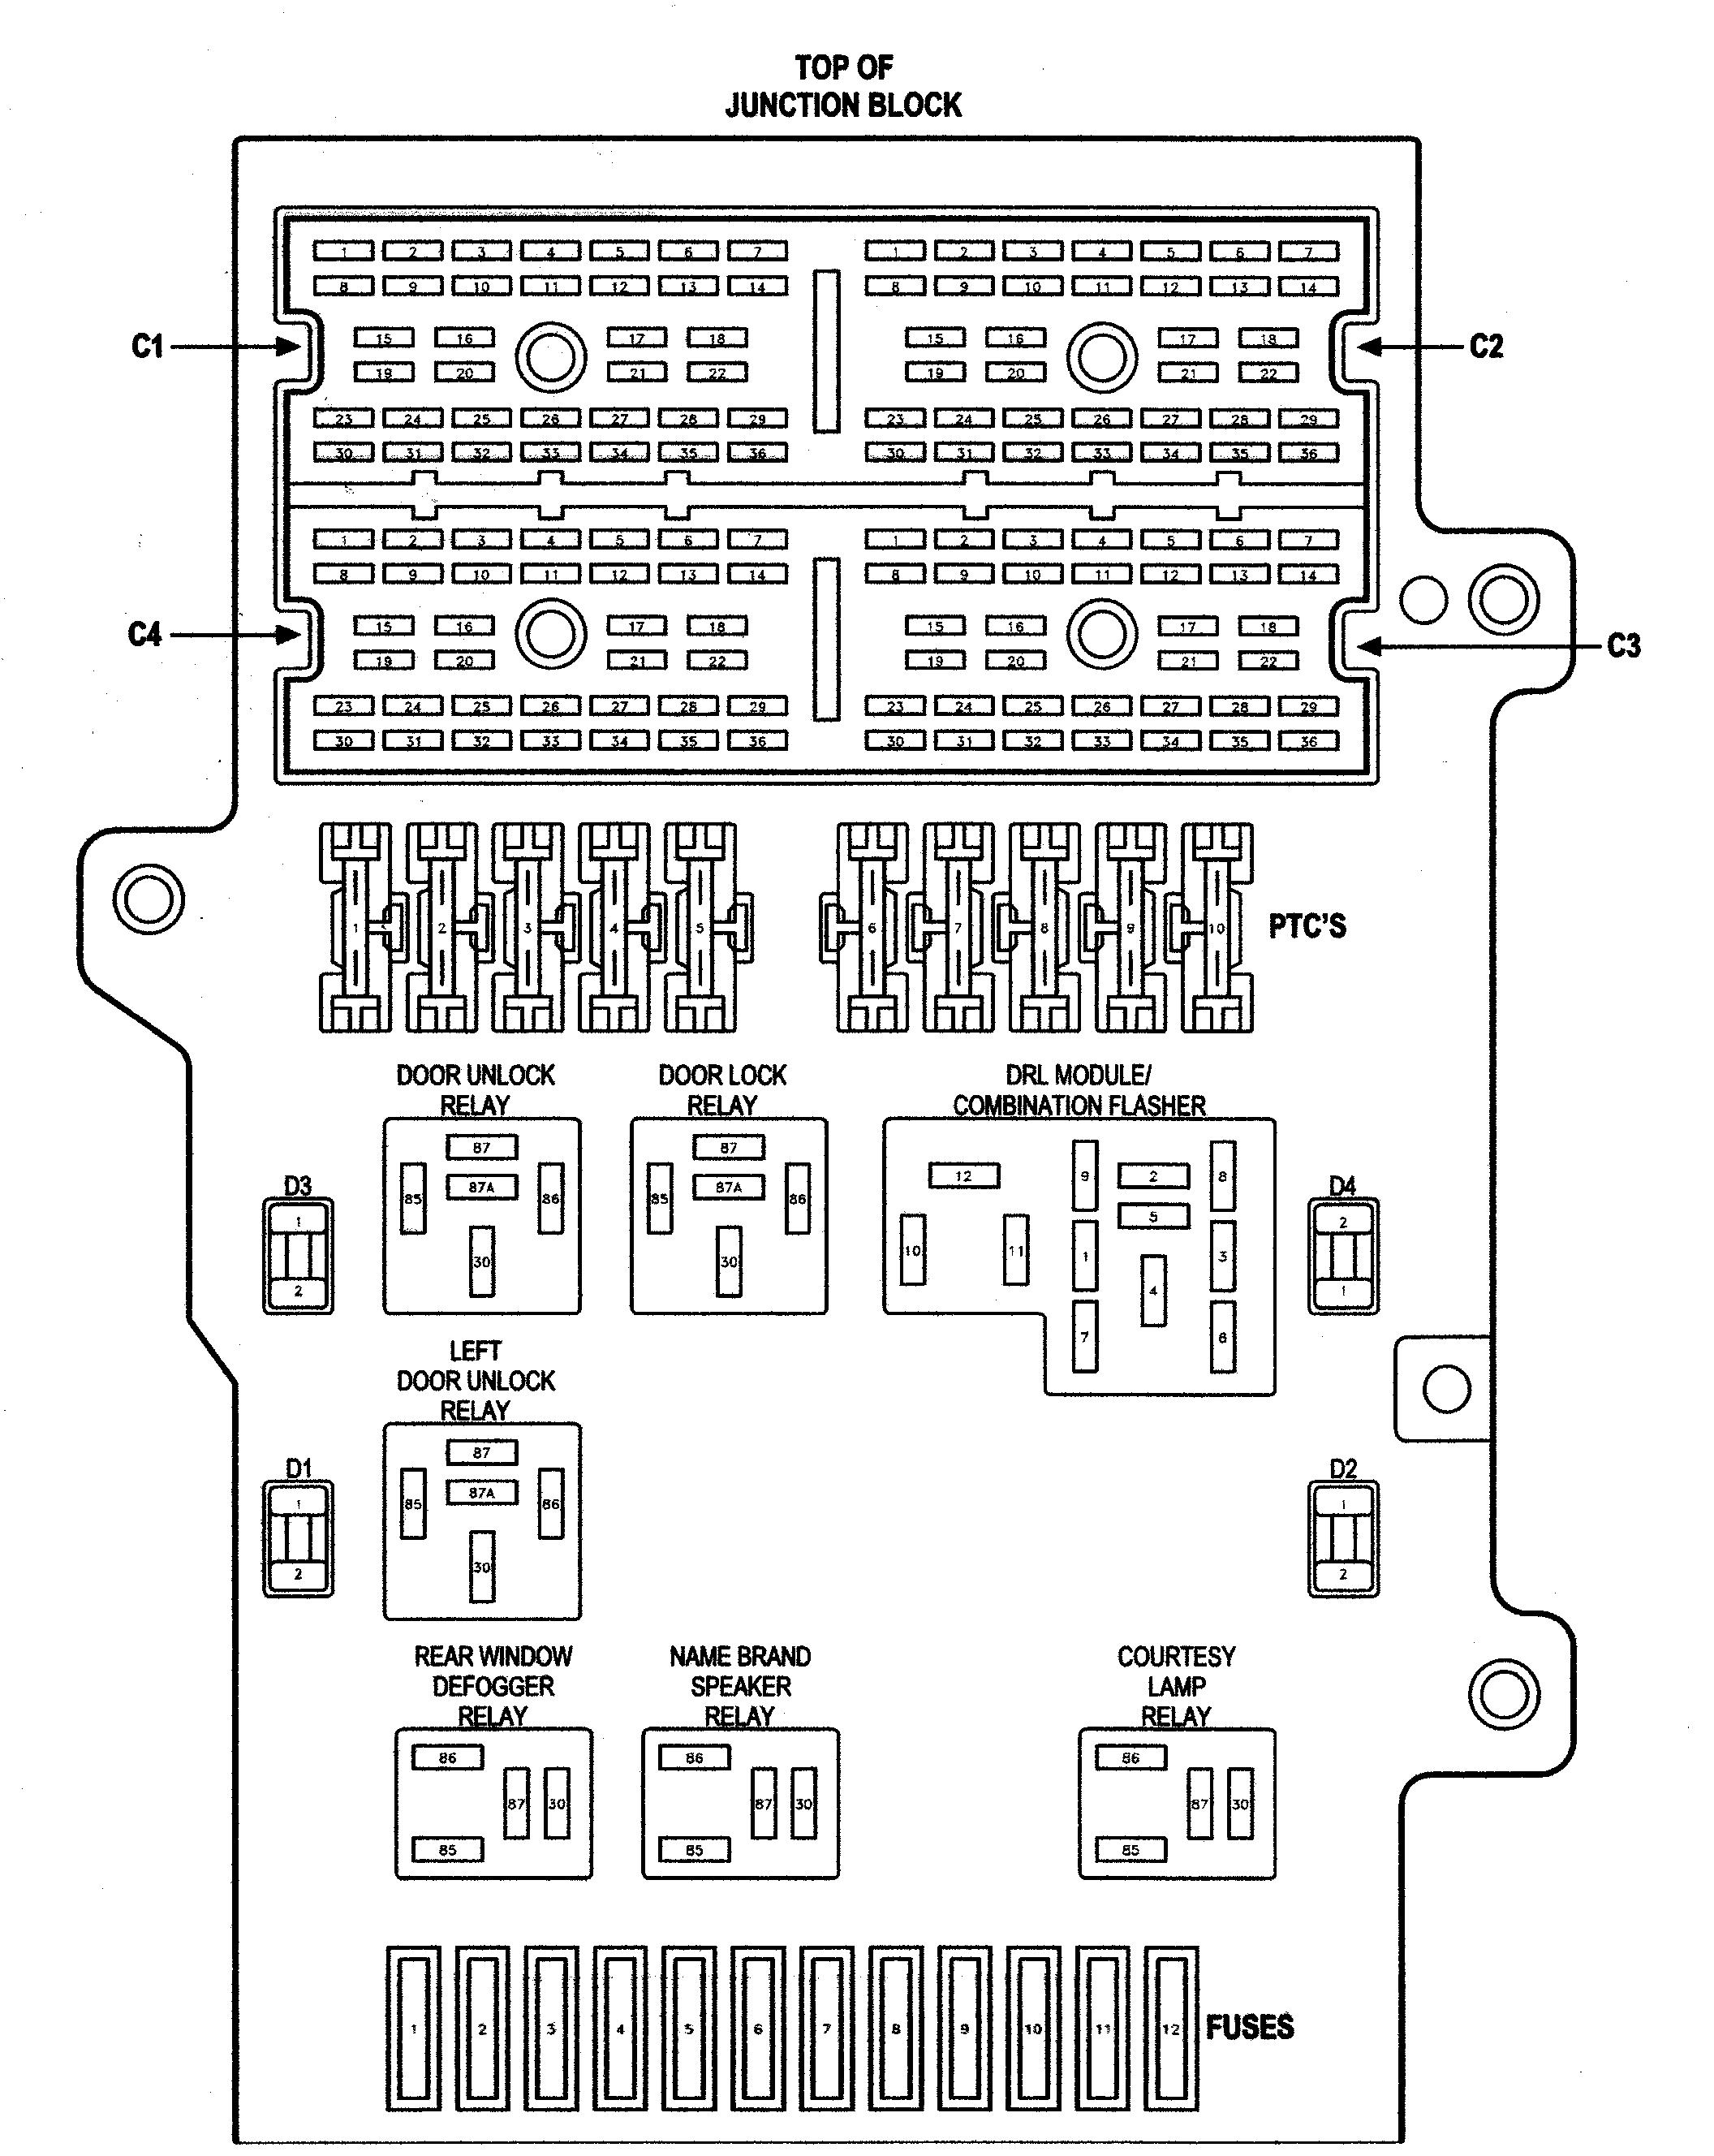 2000 Chrysler Concorde Fuse Box Diagram Great Installation Of Wiring For 1995 Plymouth Voyager Rh 19 Pfotenpower Ev De